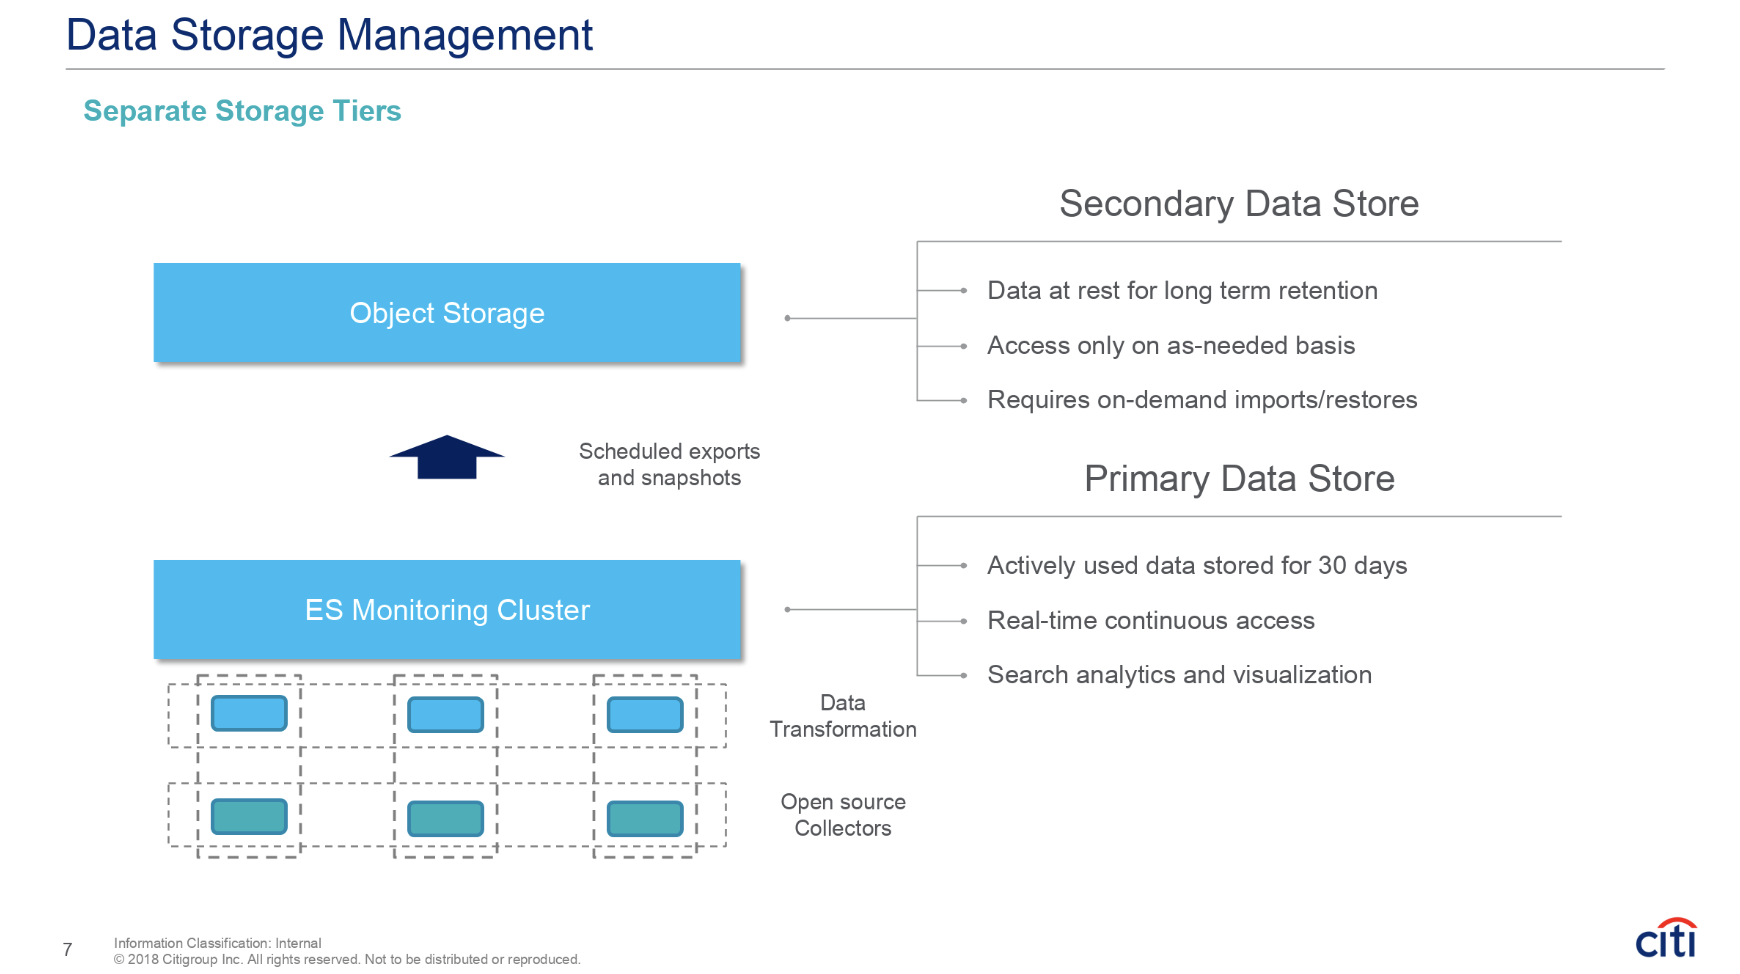 citigroup-datastorage.png